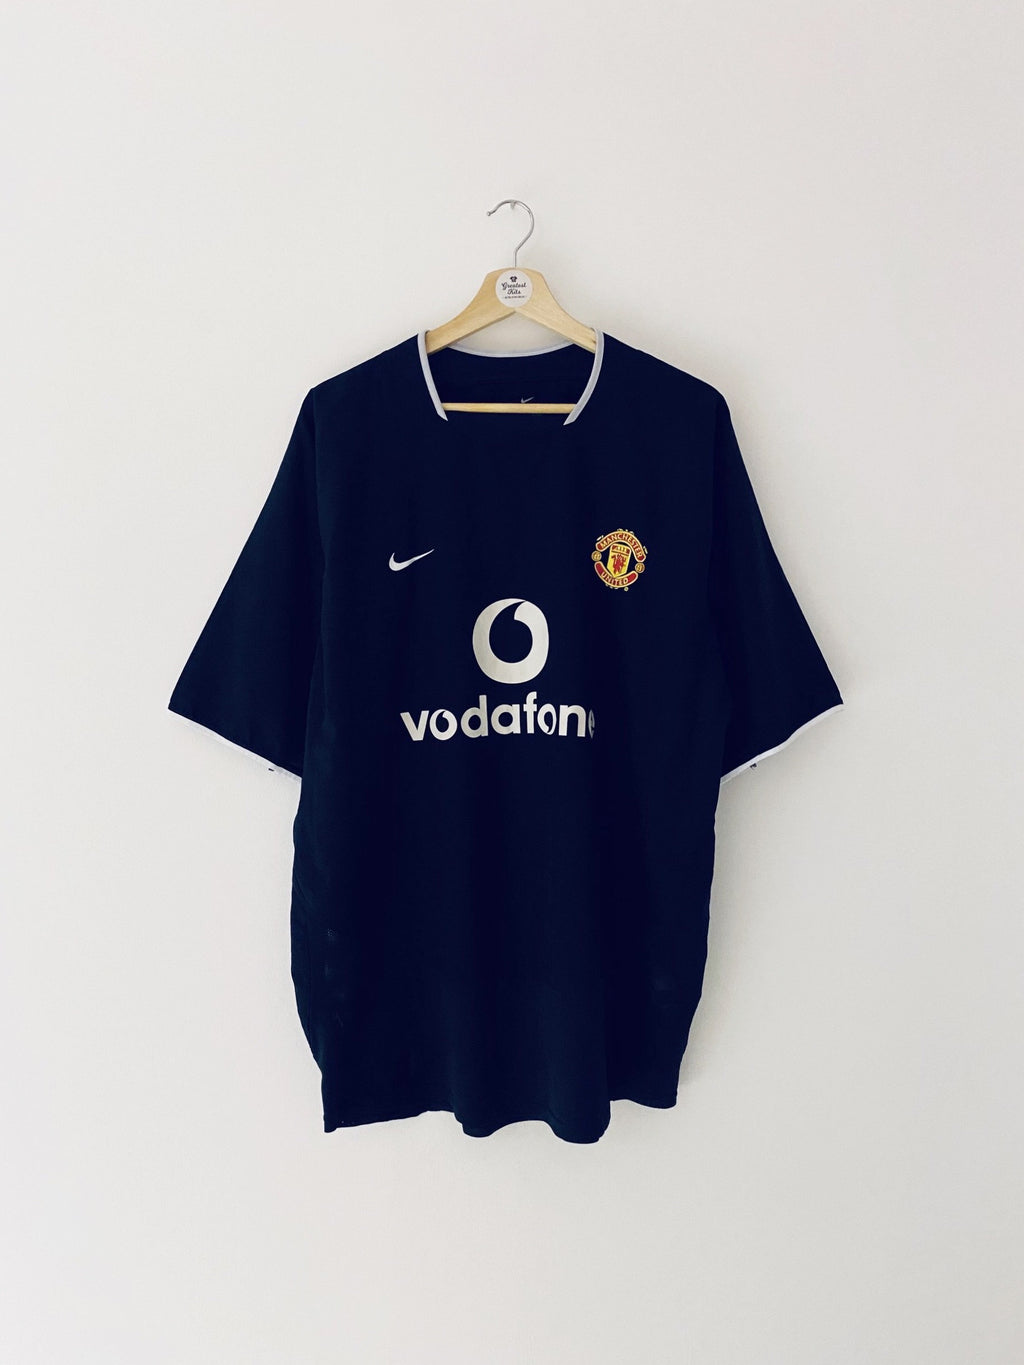 2003/05 Manchester United Away Shirt (XL) 9/10